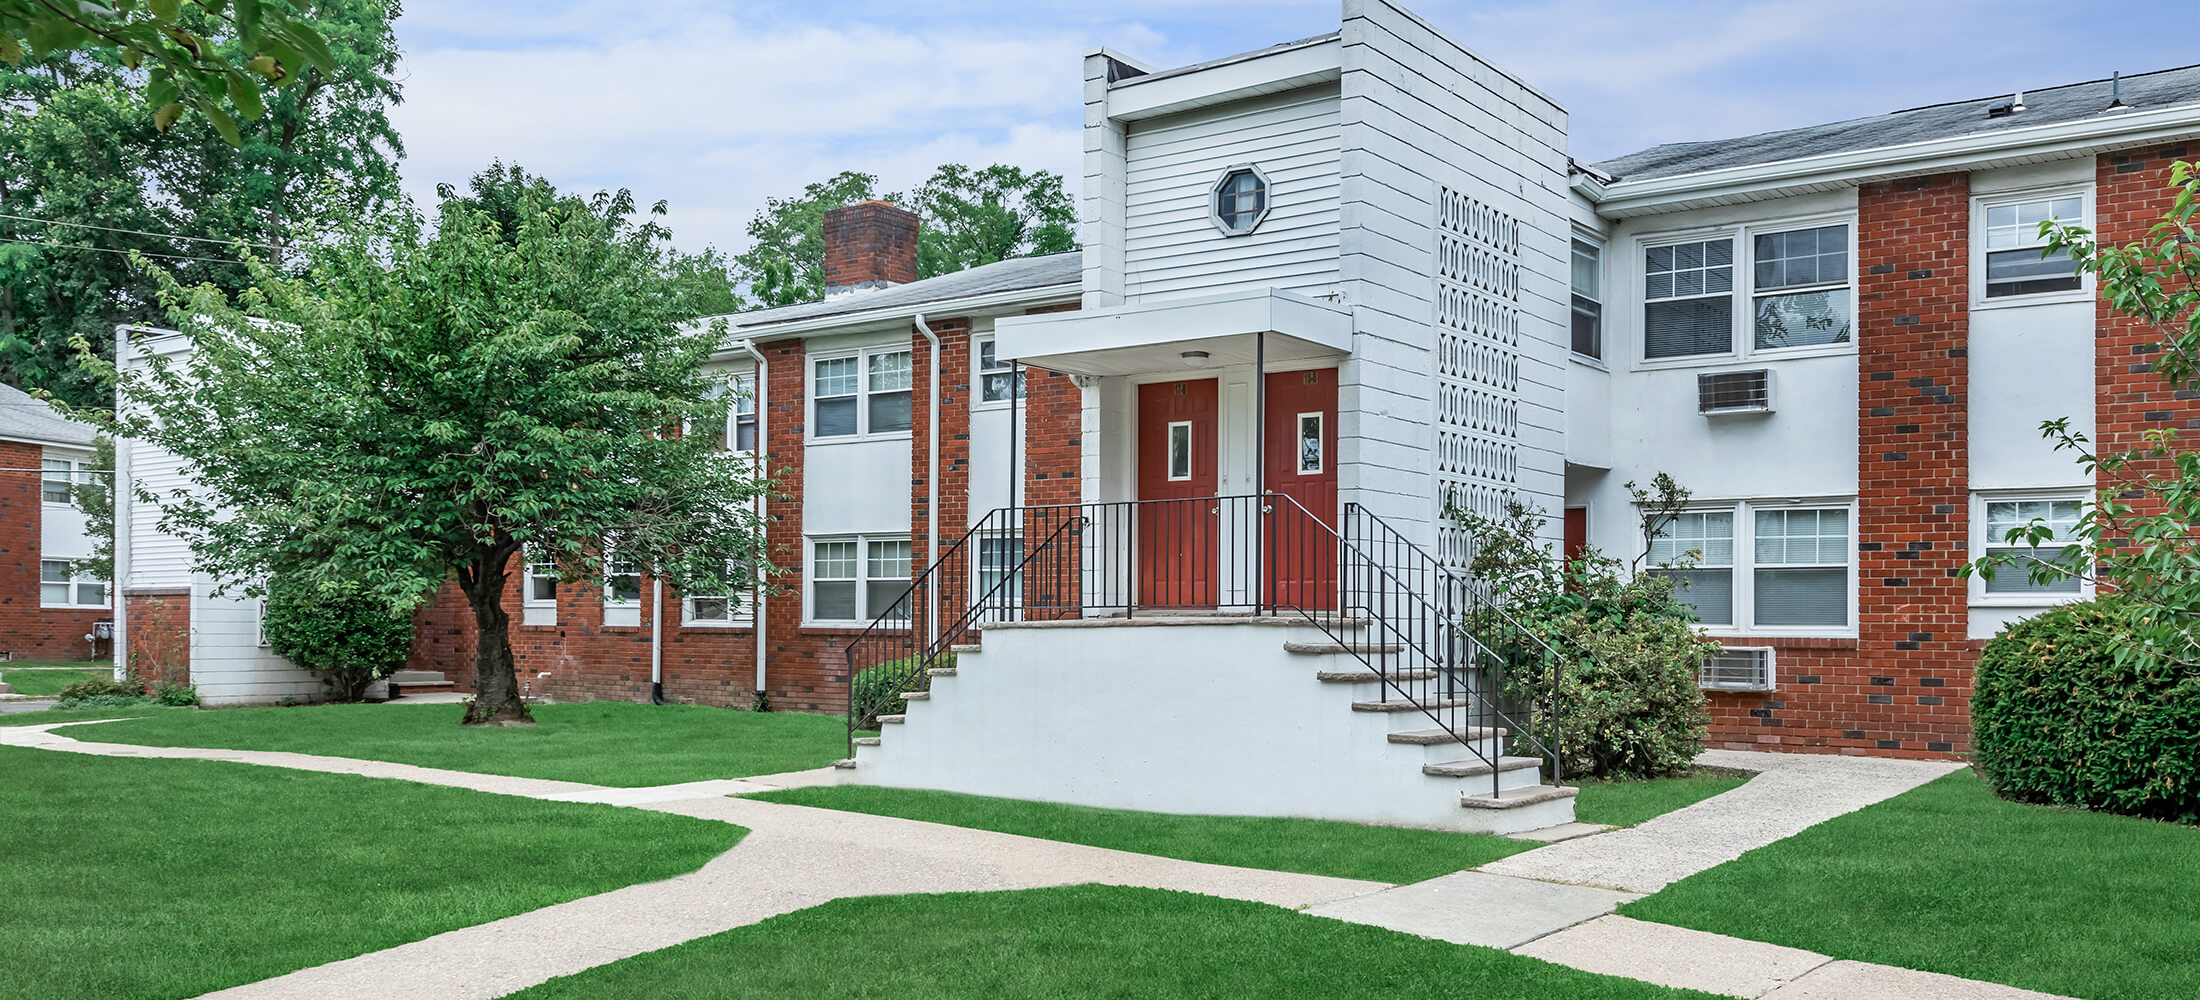 Meadowbrook Gardens - Apartments in Parsippany, NJ